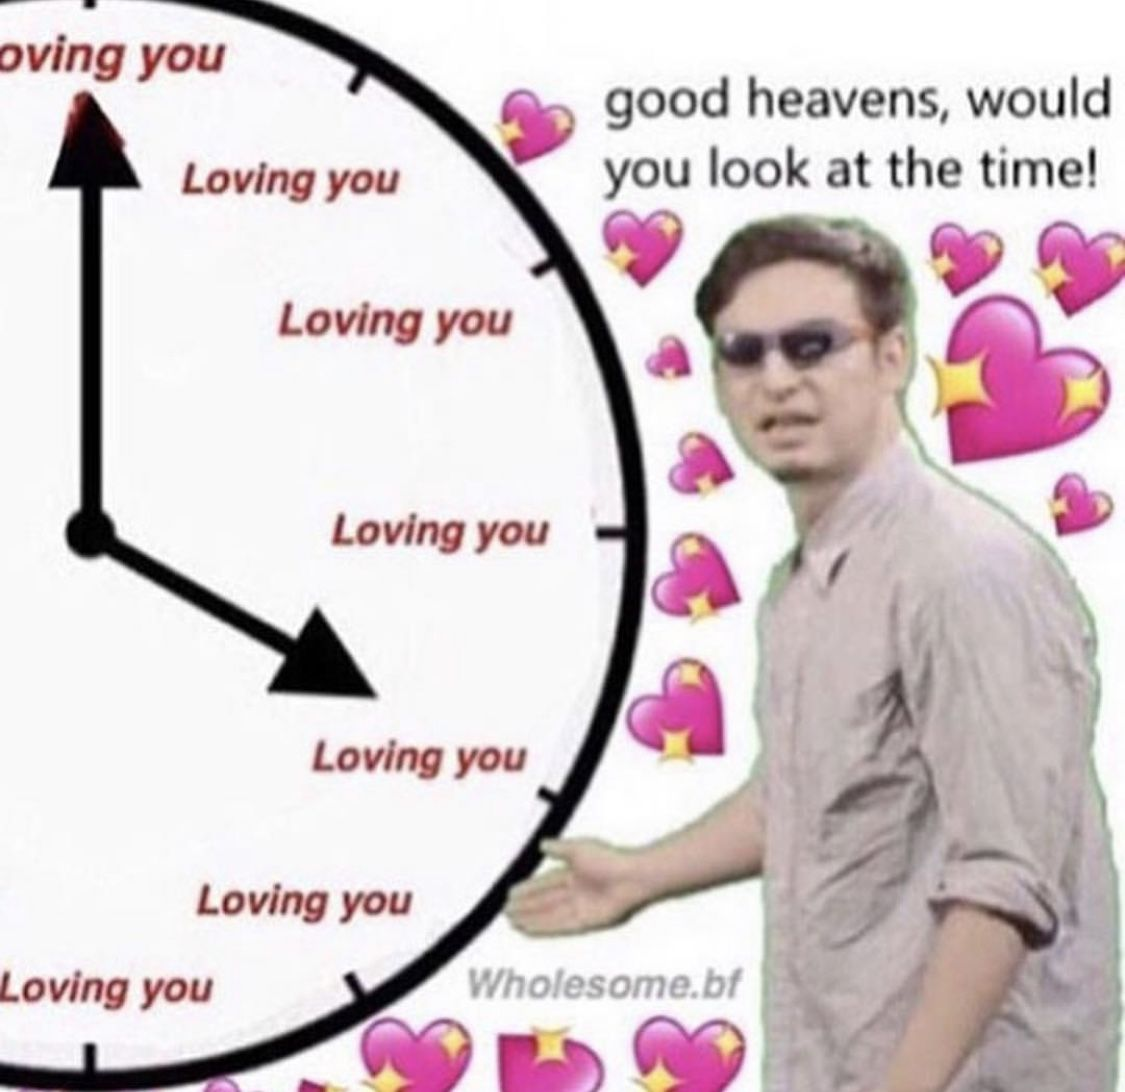 Pin By Sol On Wholesome 3 Flirty Memes Cute Love Memes Mood Pics